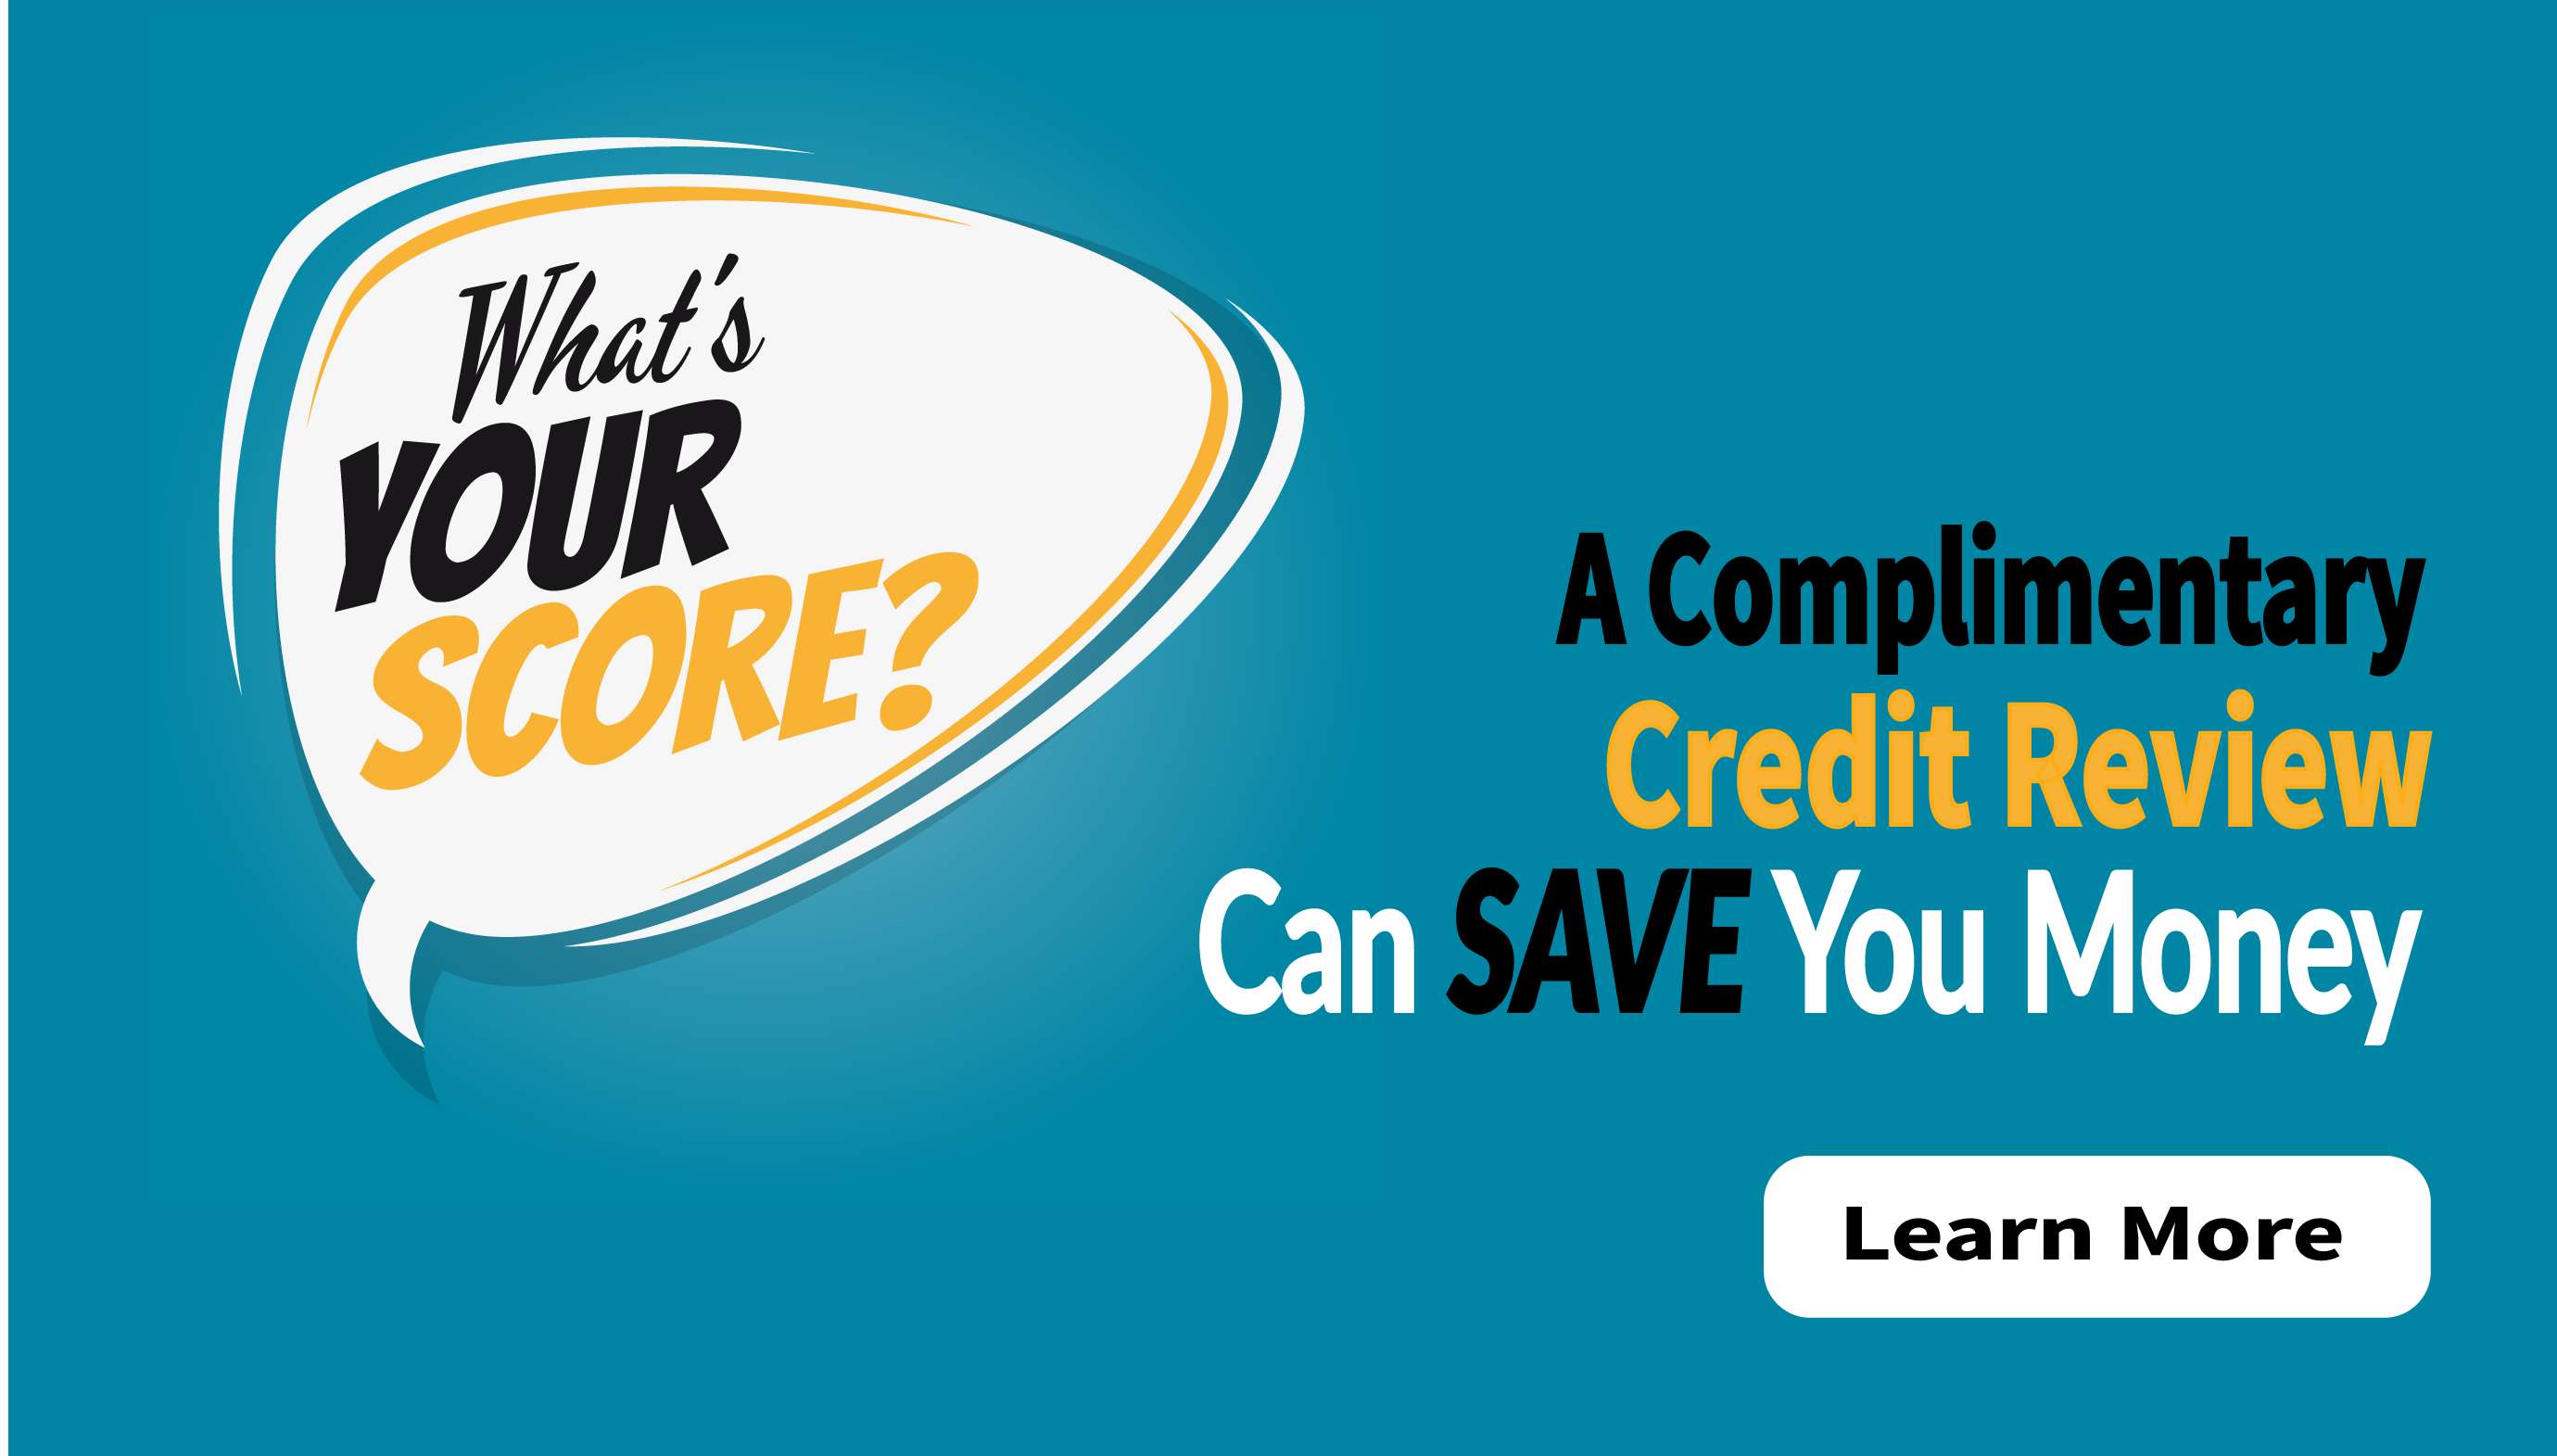 Get Your Complimentary Credit Review Today!